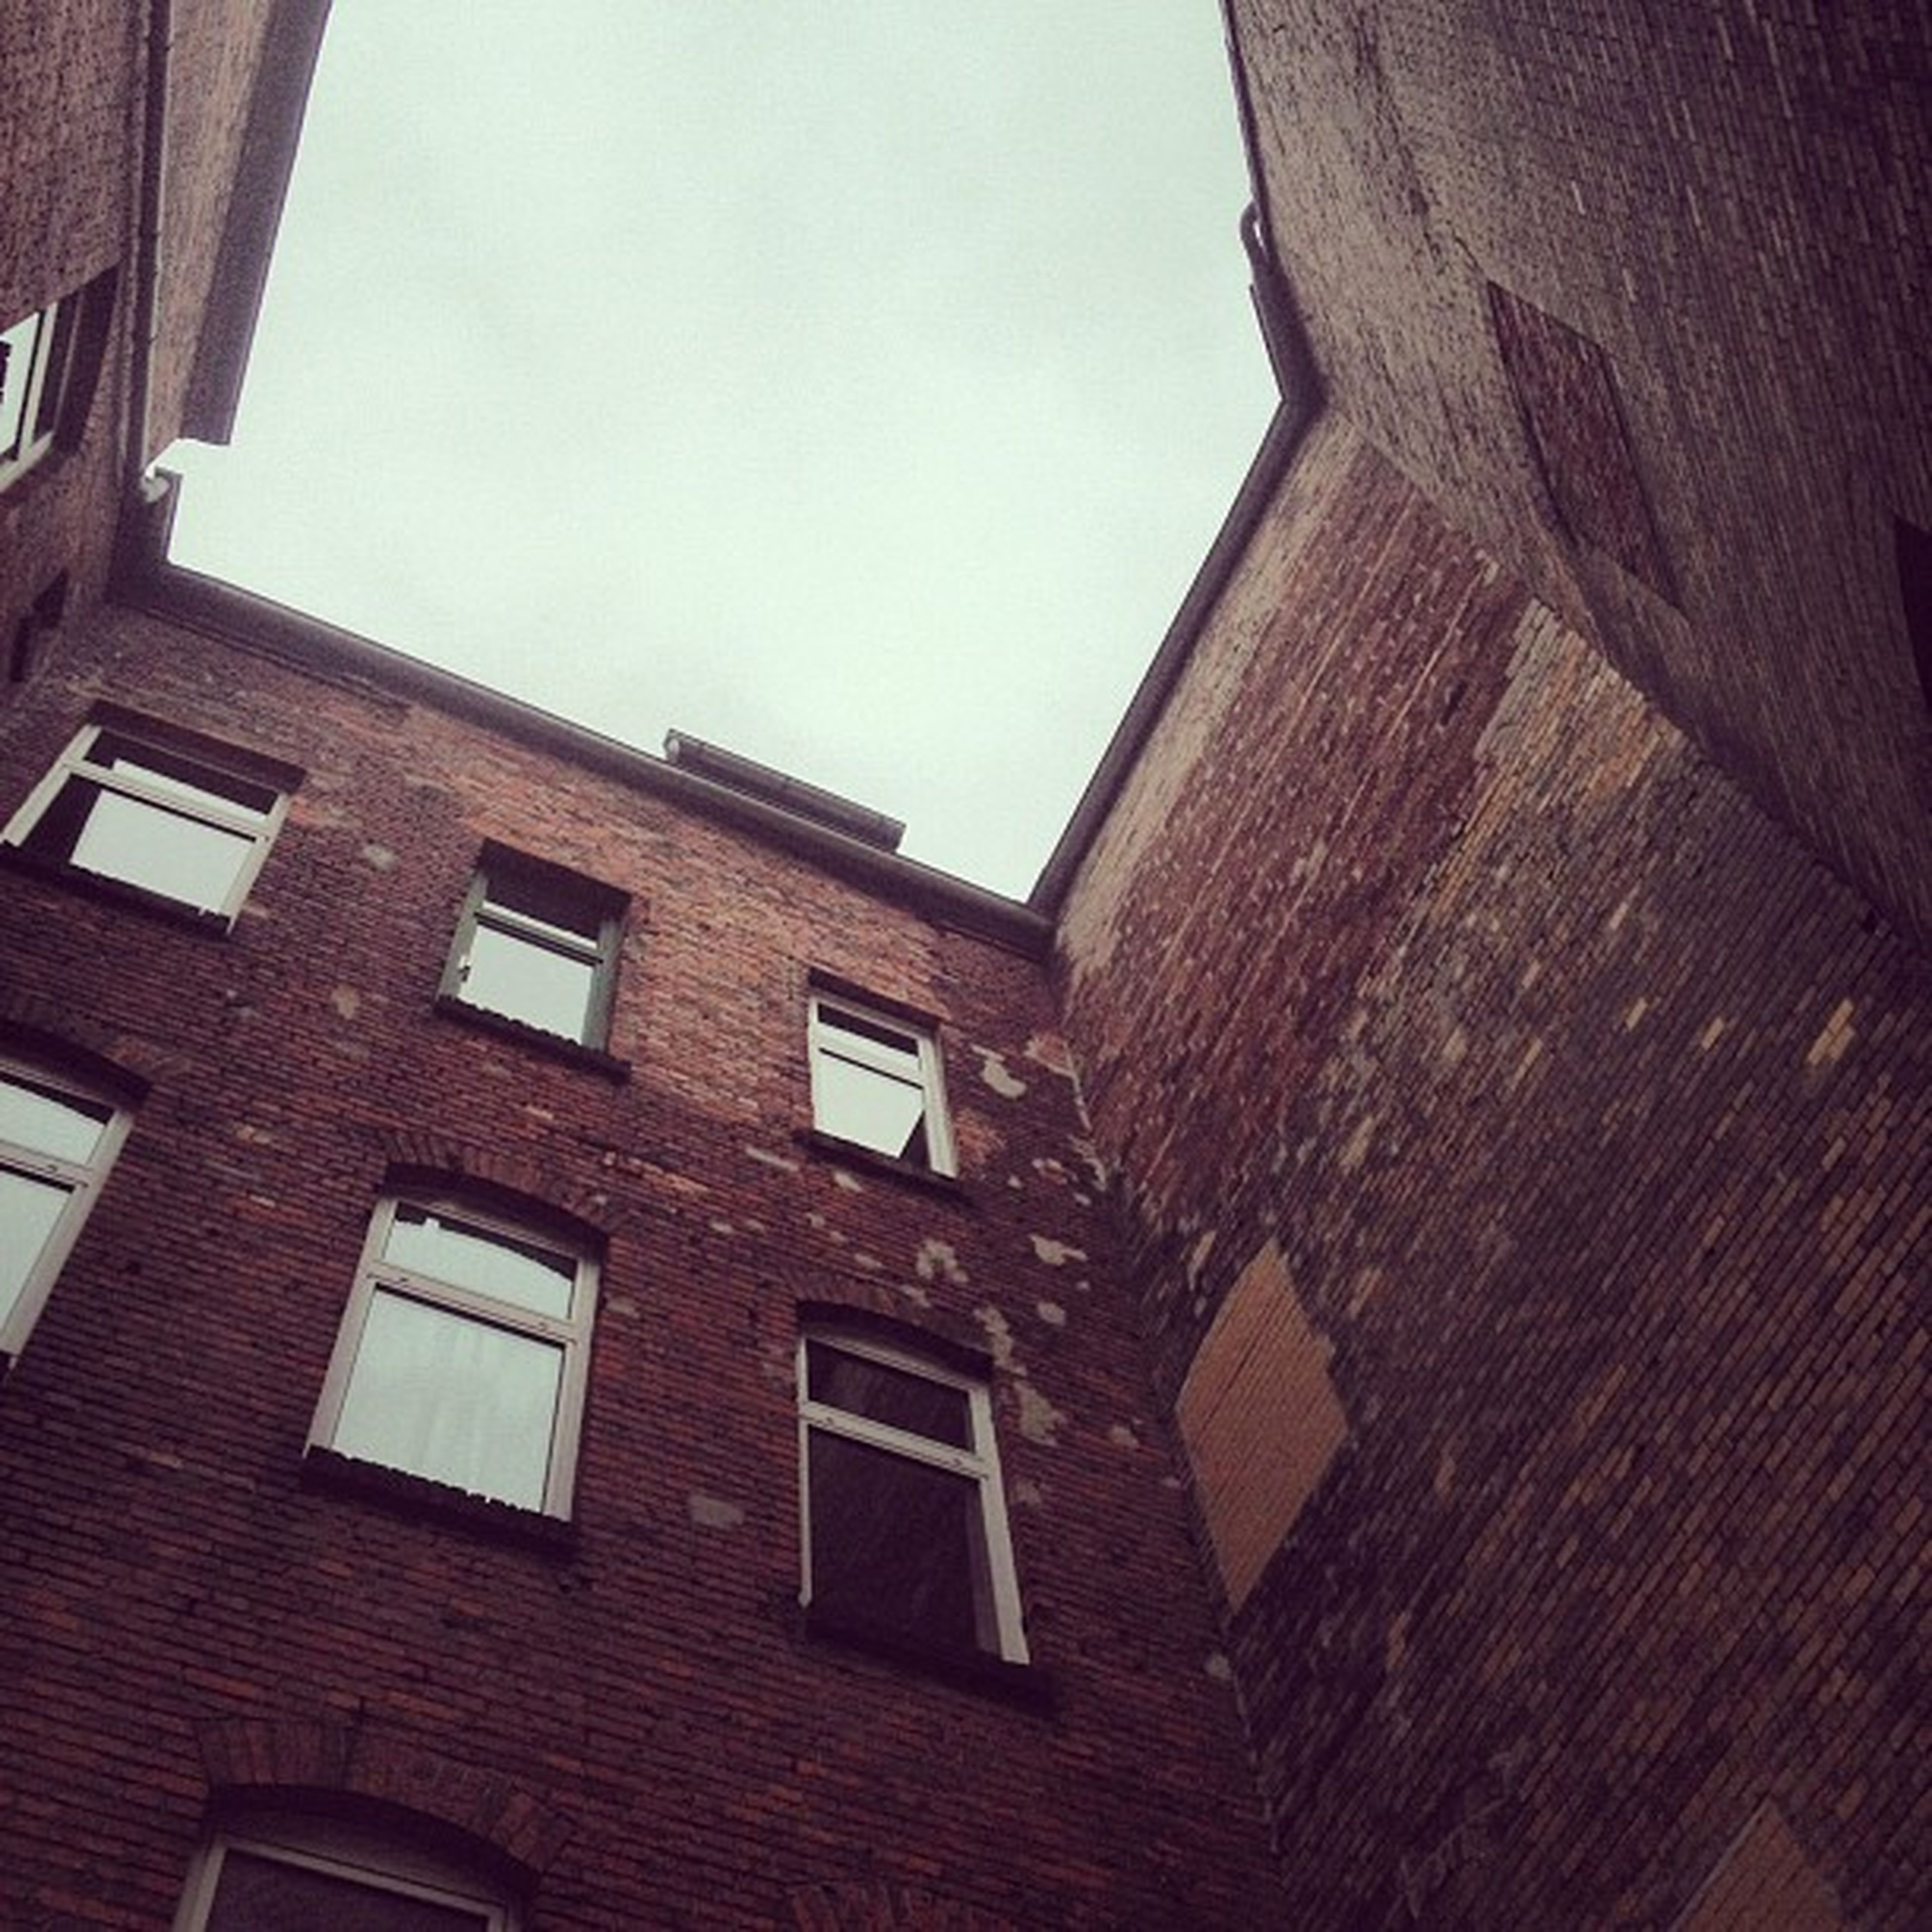 architecture, built structure, building exterior, low angle view, window, building, sky, brick wall, residential building, residential structure, day, wall - building feature, no people, outdoors, clear sky, old, city, arch, sunlight, wall